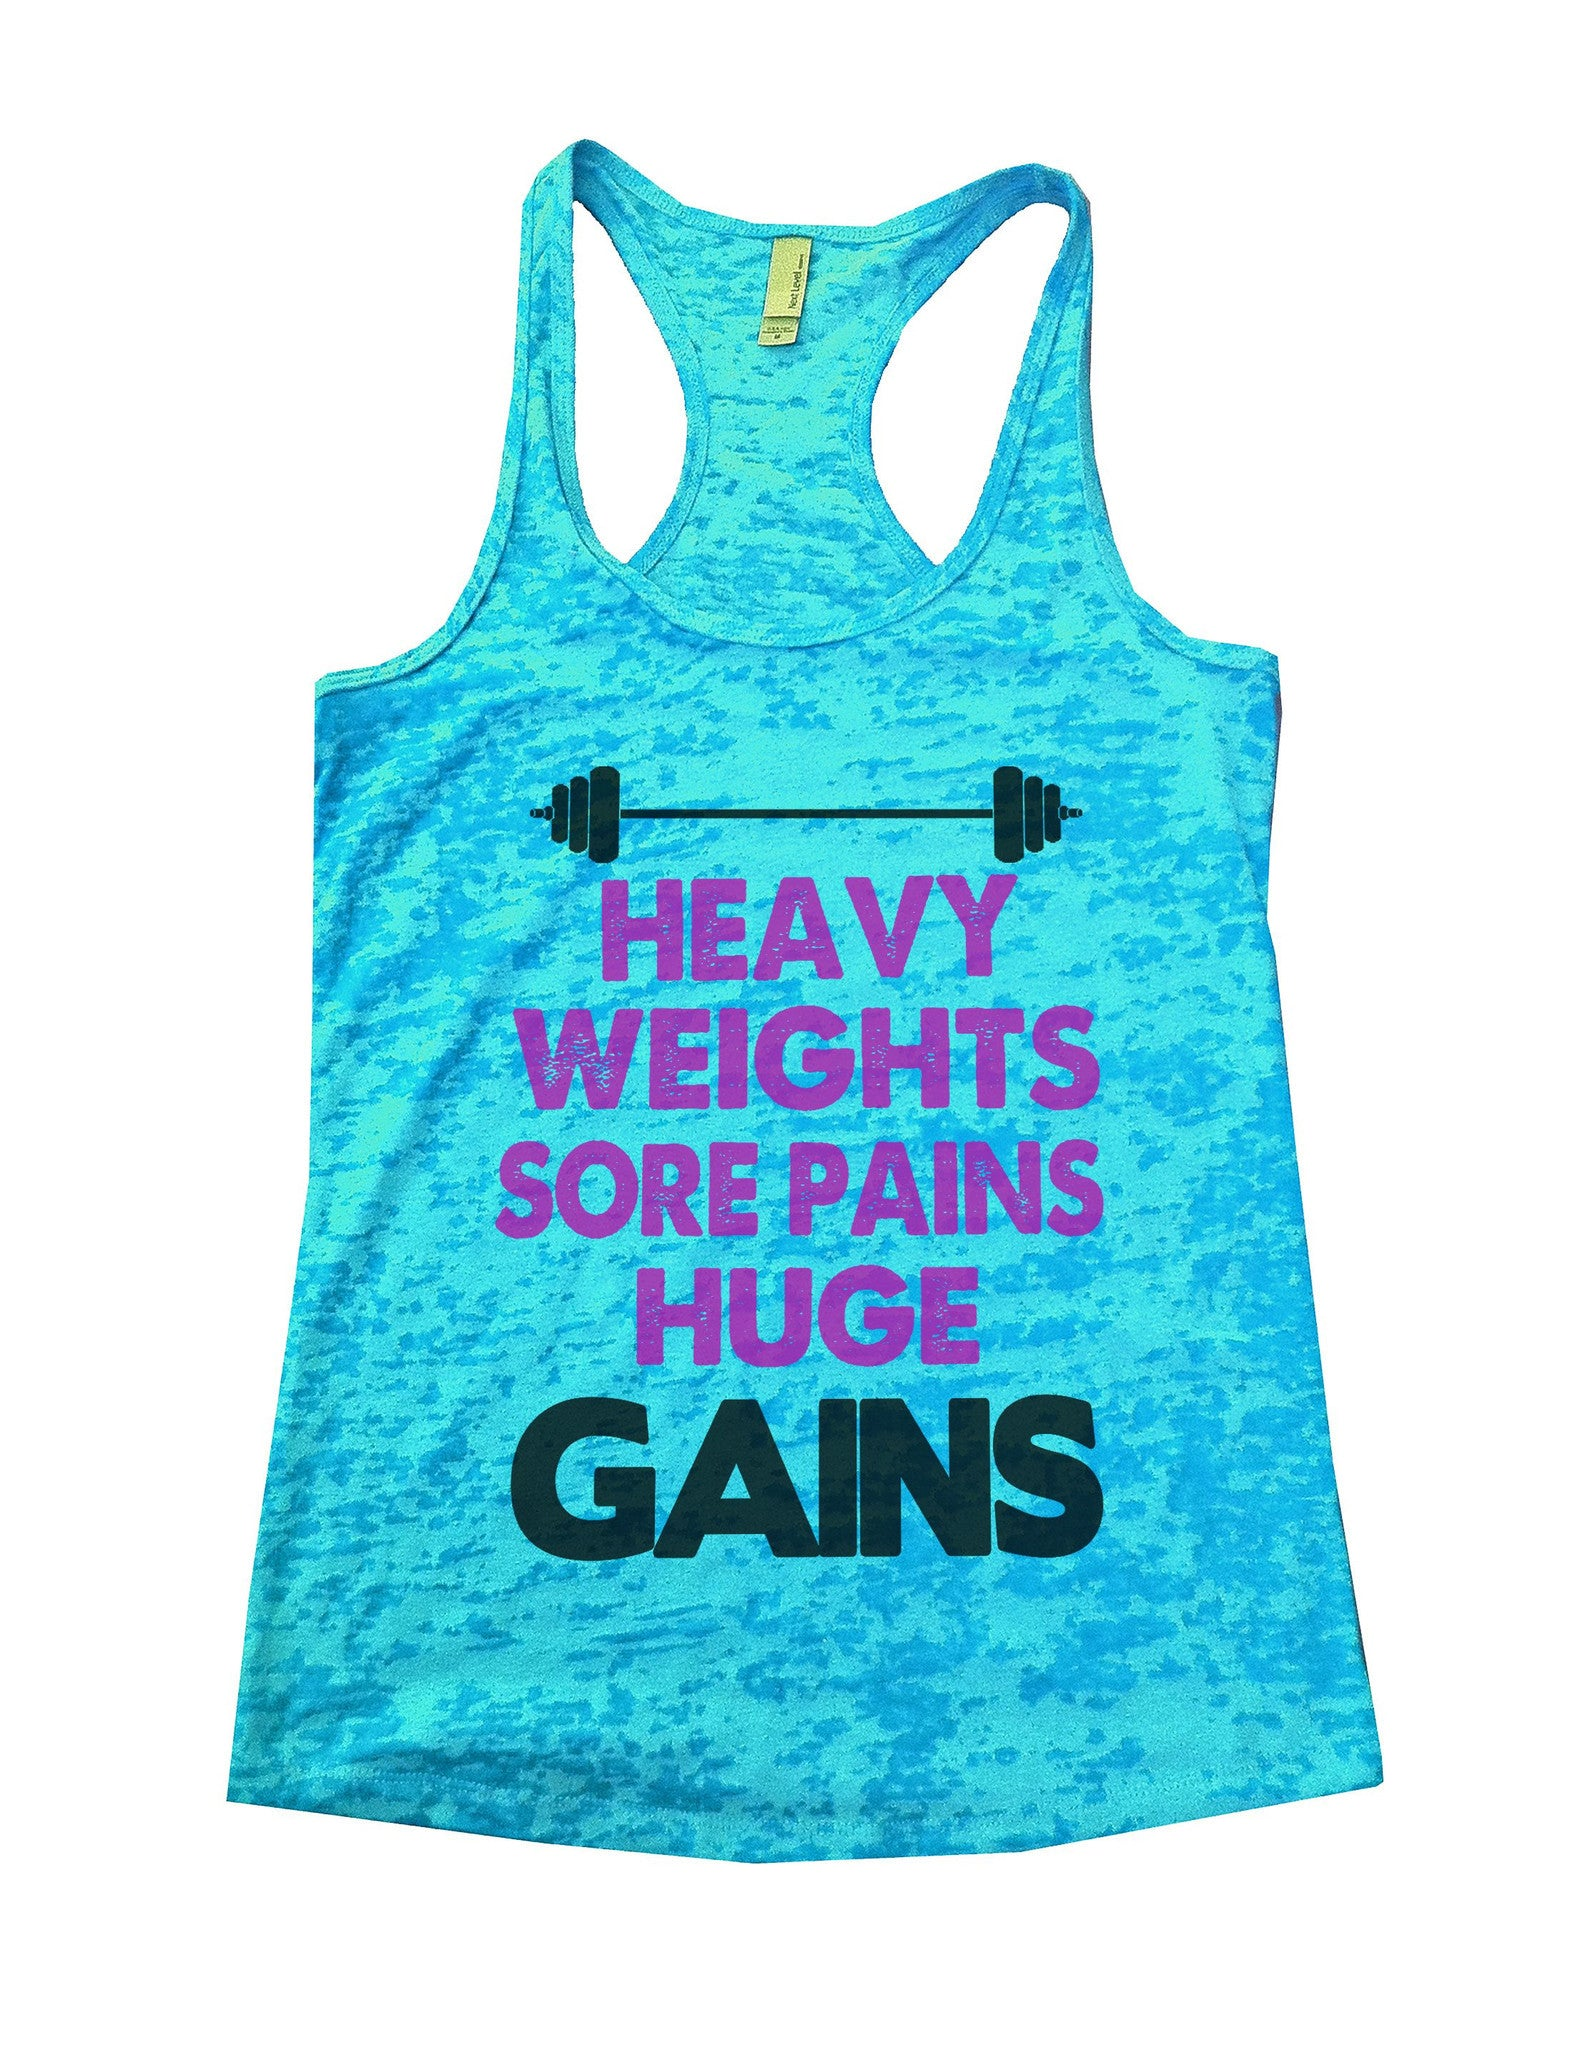 Heavy Weights Sore Pains Huge Gains Burnout Tank Top By BurnoutTankTops.com - 620 - Funny Shirts Tank Tops Burnouts and Triblends  - 3